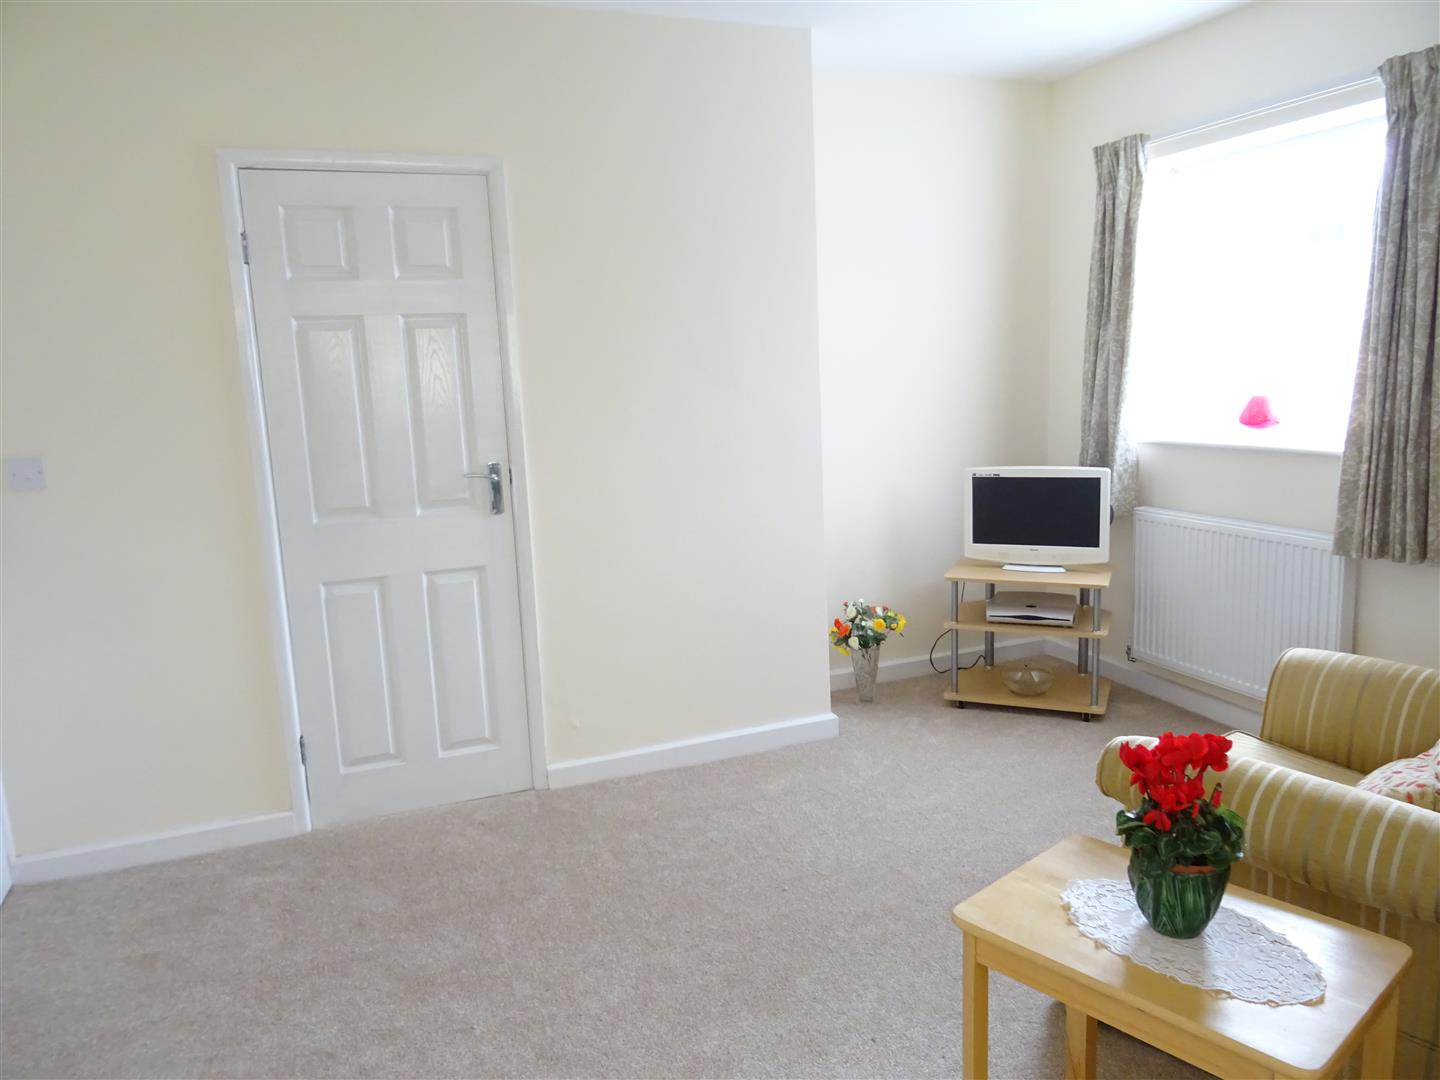 Rewire A Three Bedroom House Data Wiring Diagrams Average Cost Of Rewiring Bed 3 Detached Bungalow For Sale Peterfield Road To